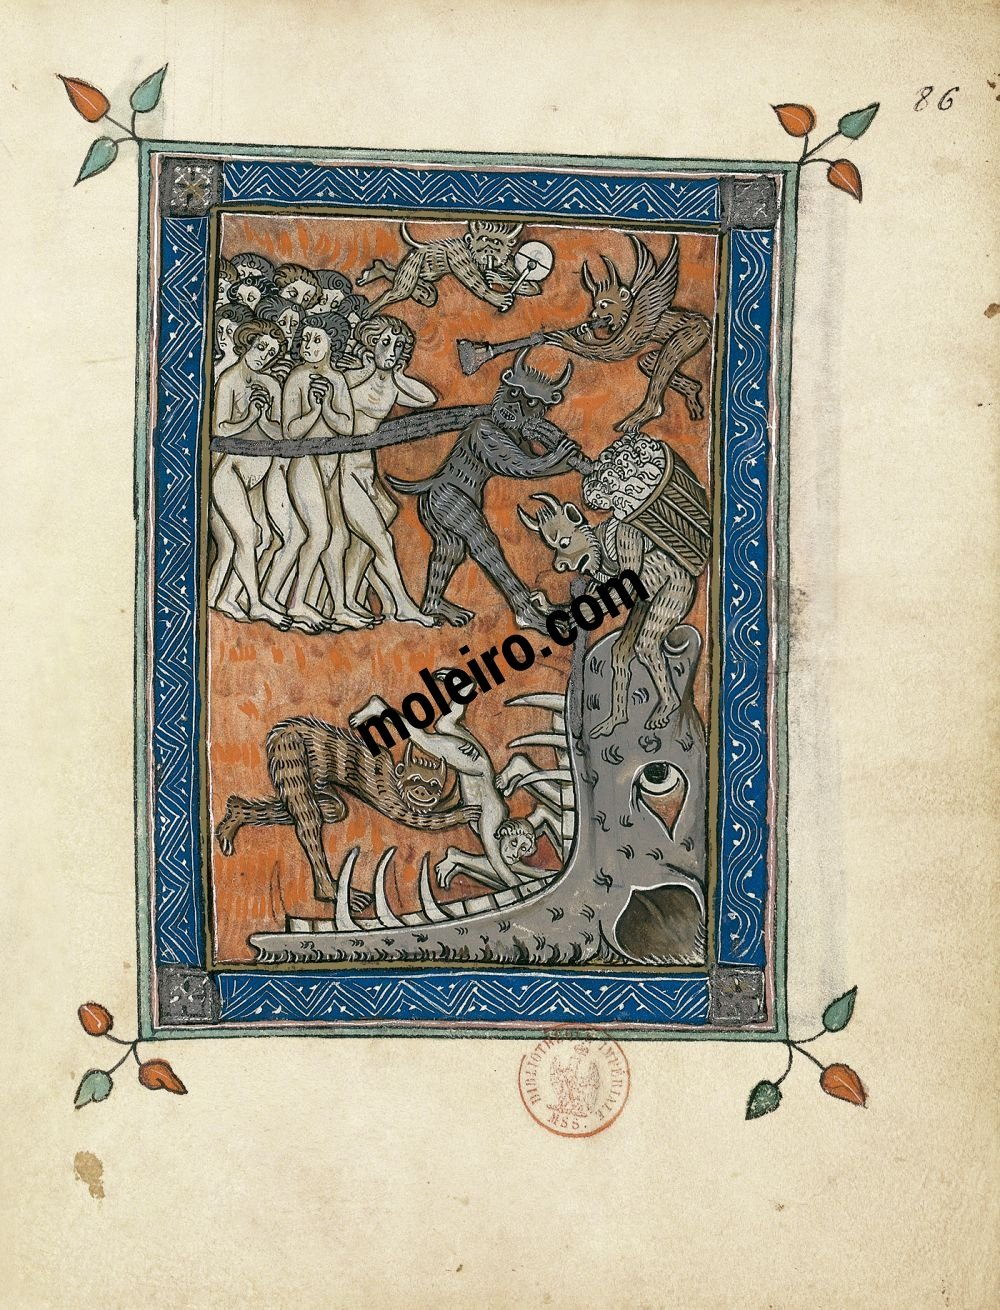 The Apocalypse of 1313 f. 86r, The damned taken to Hell (Revelation 22: 16-21)